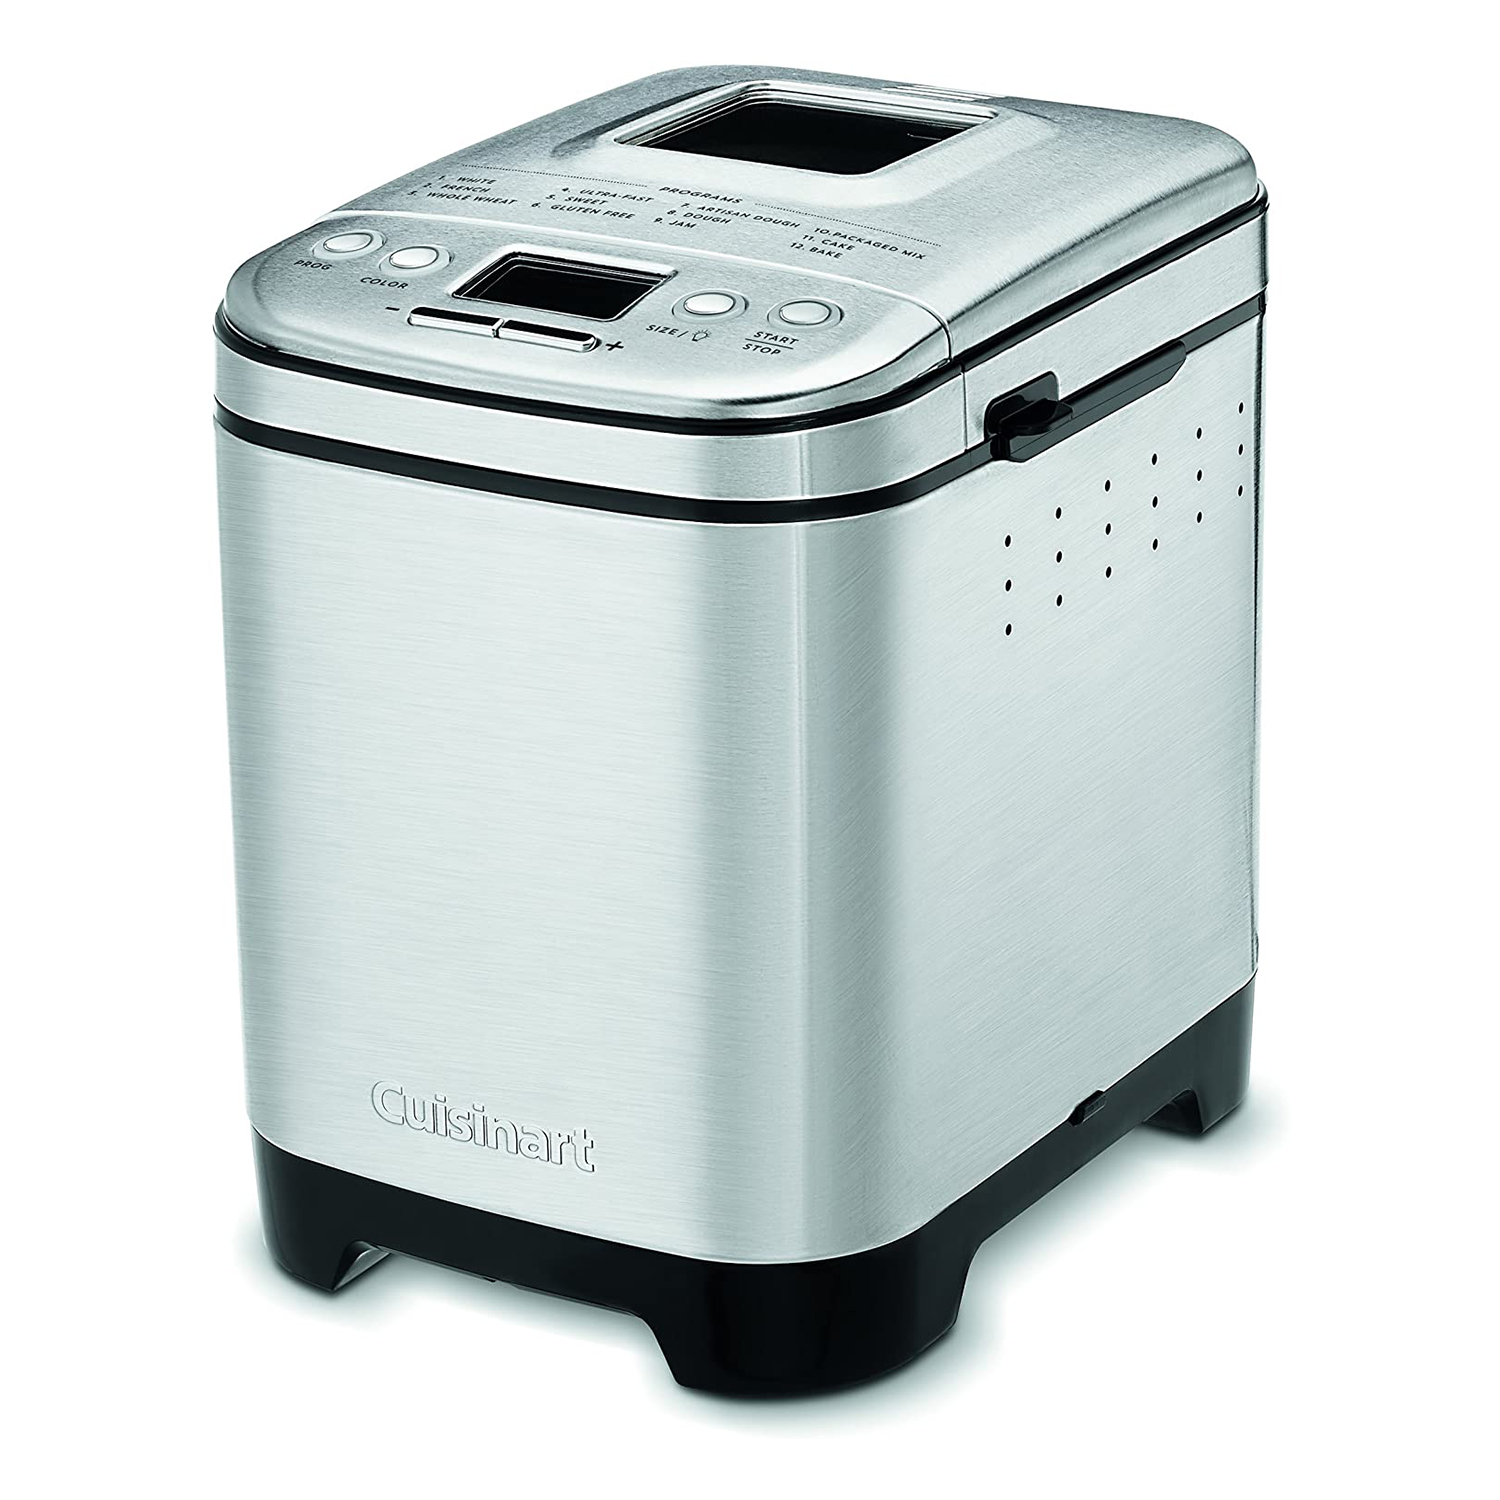 Cuisinart Bread Maker, Up To 2lb Loaf